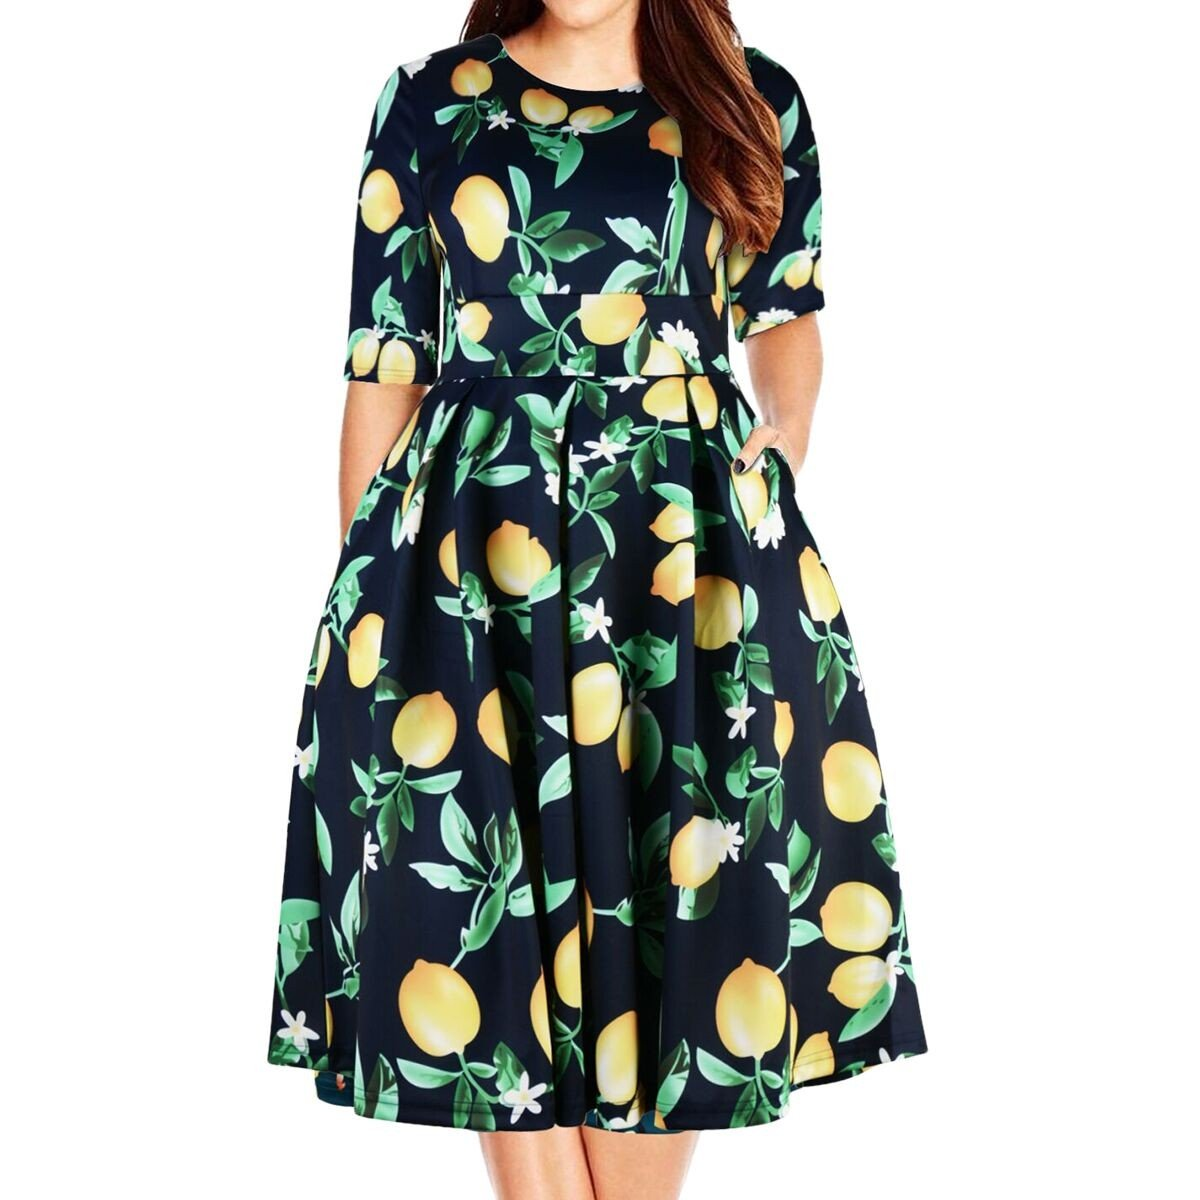 Samtree Women's Plus Size Floral 3/4 Sleeve Backless Cocktail Party Swing Dress(UK 20(US 16 Plus),Blue)